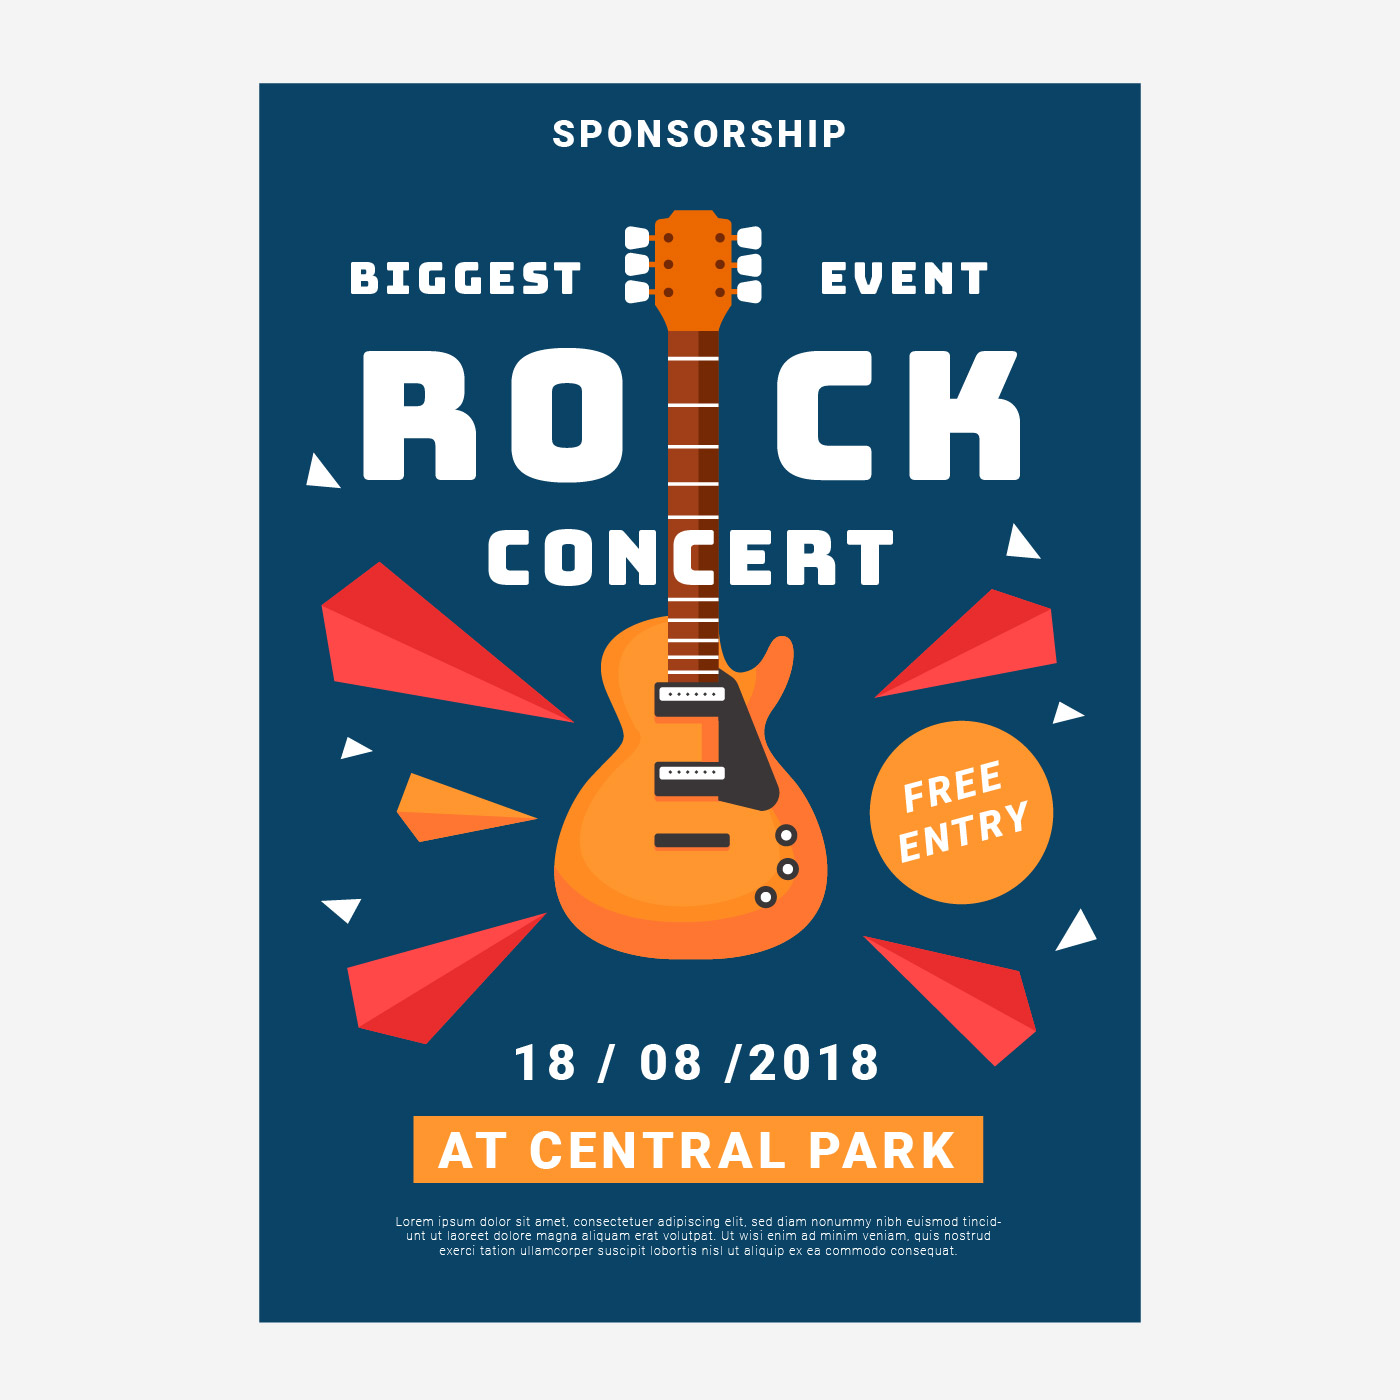 Concert Rock Poster Template - Download Free Vector Art ...